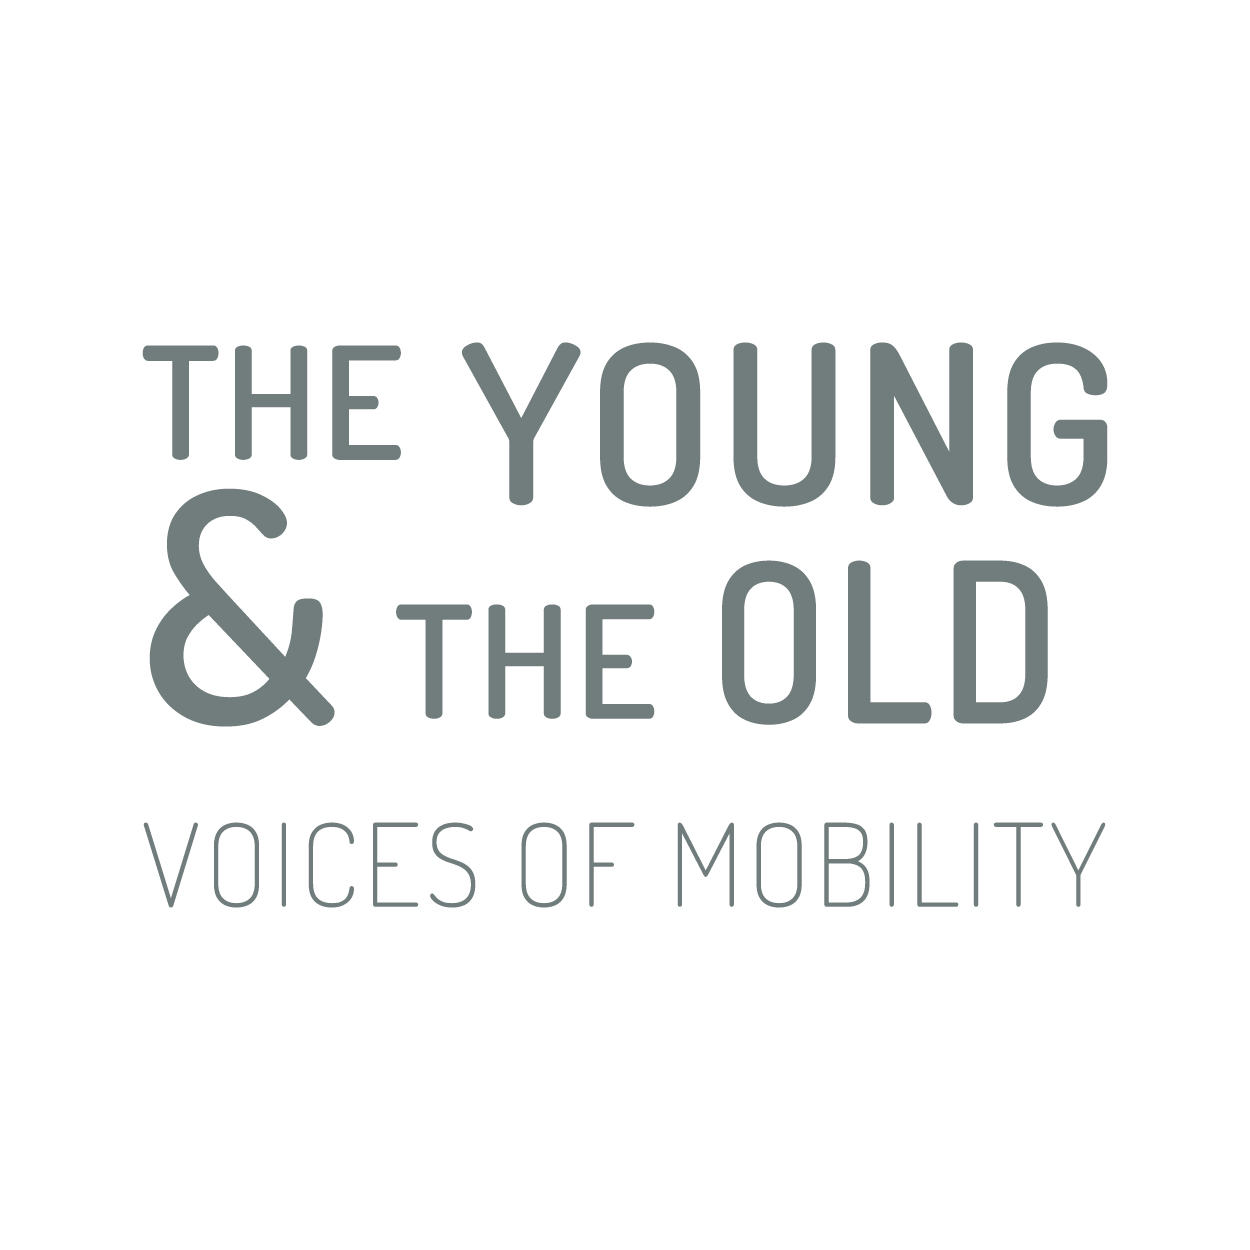 ACstyria Podcast: The Young and the Old